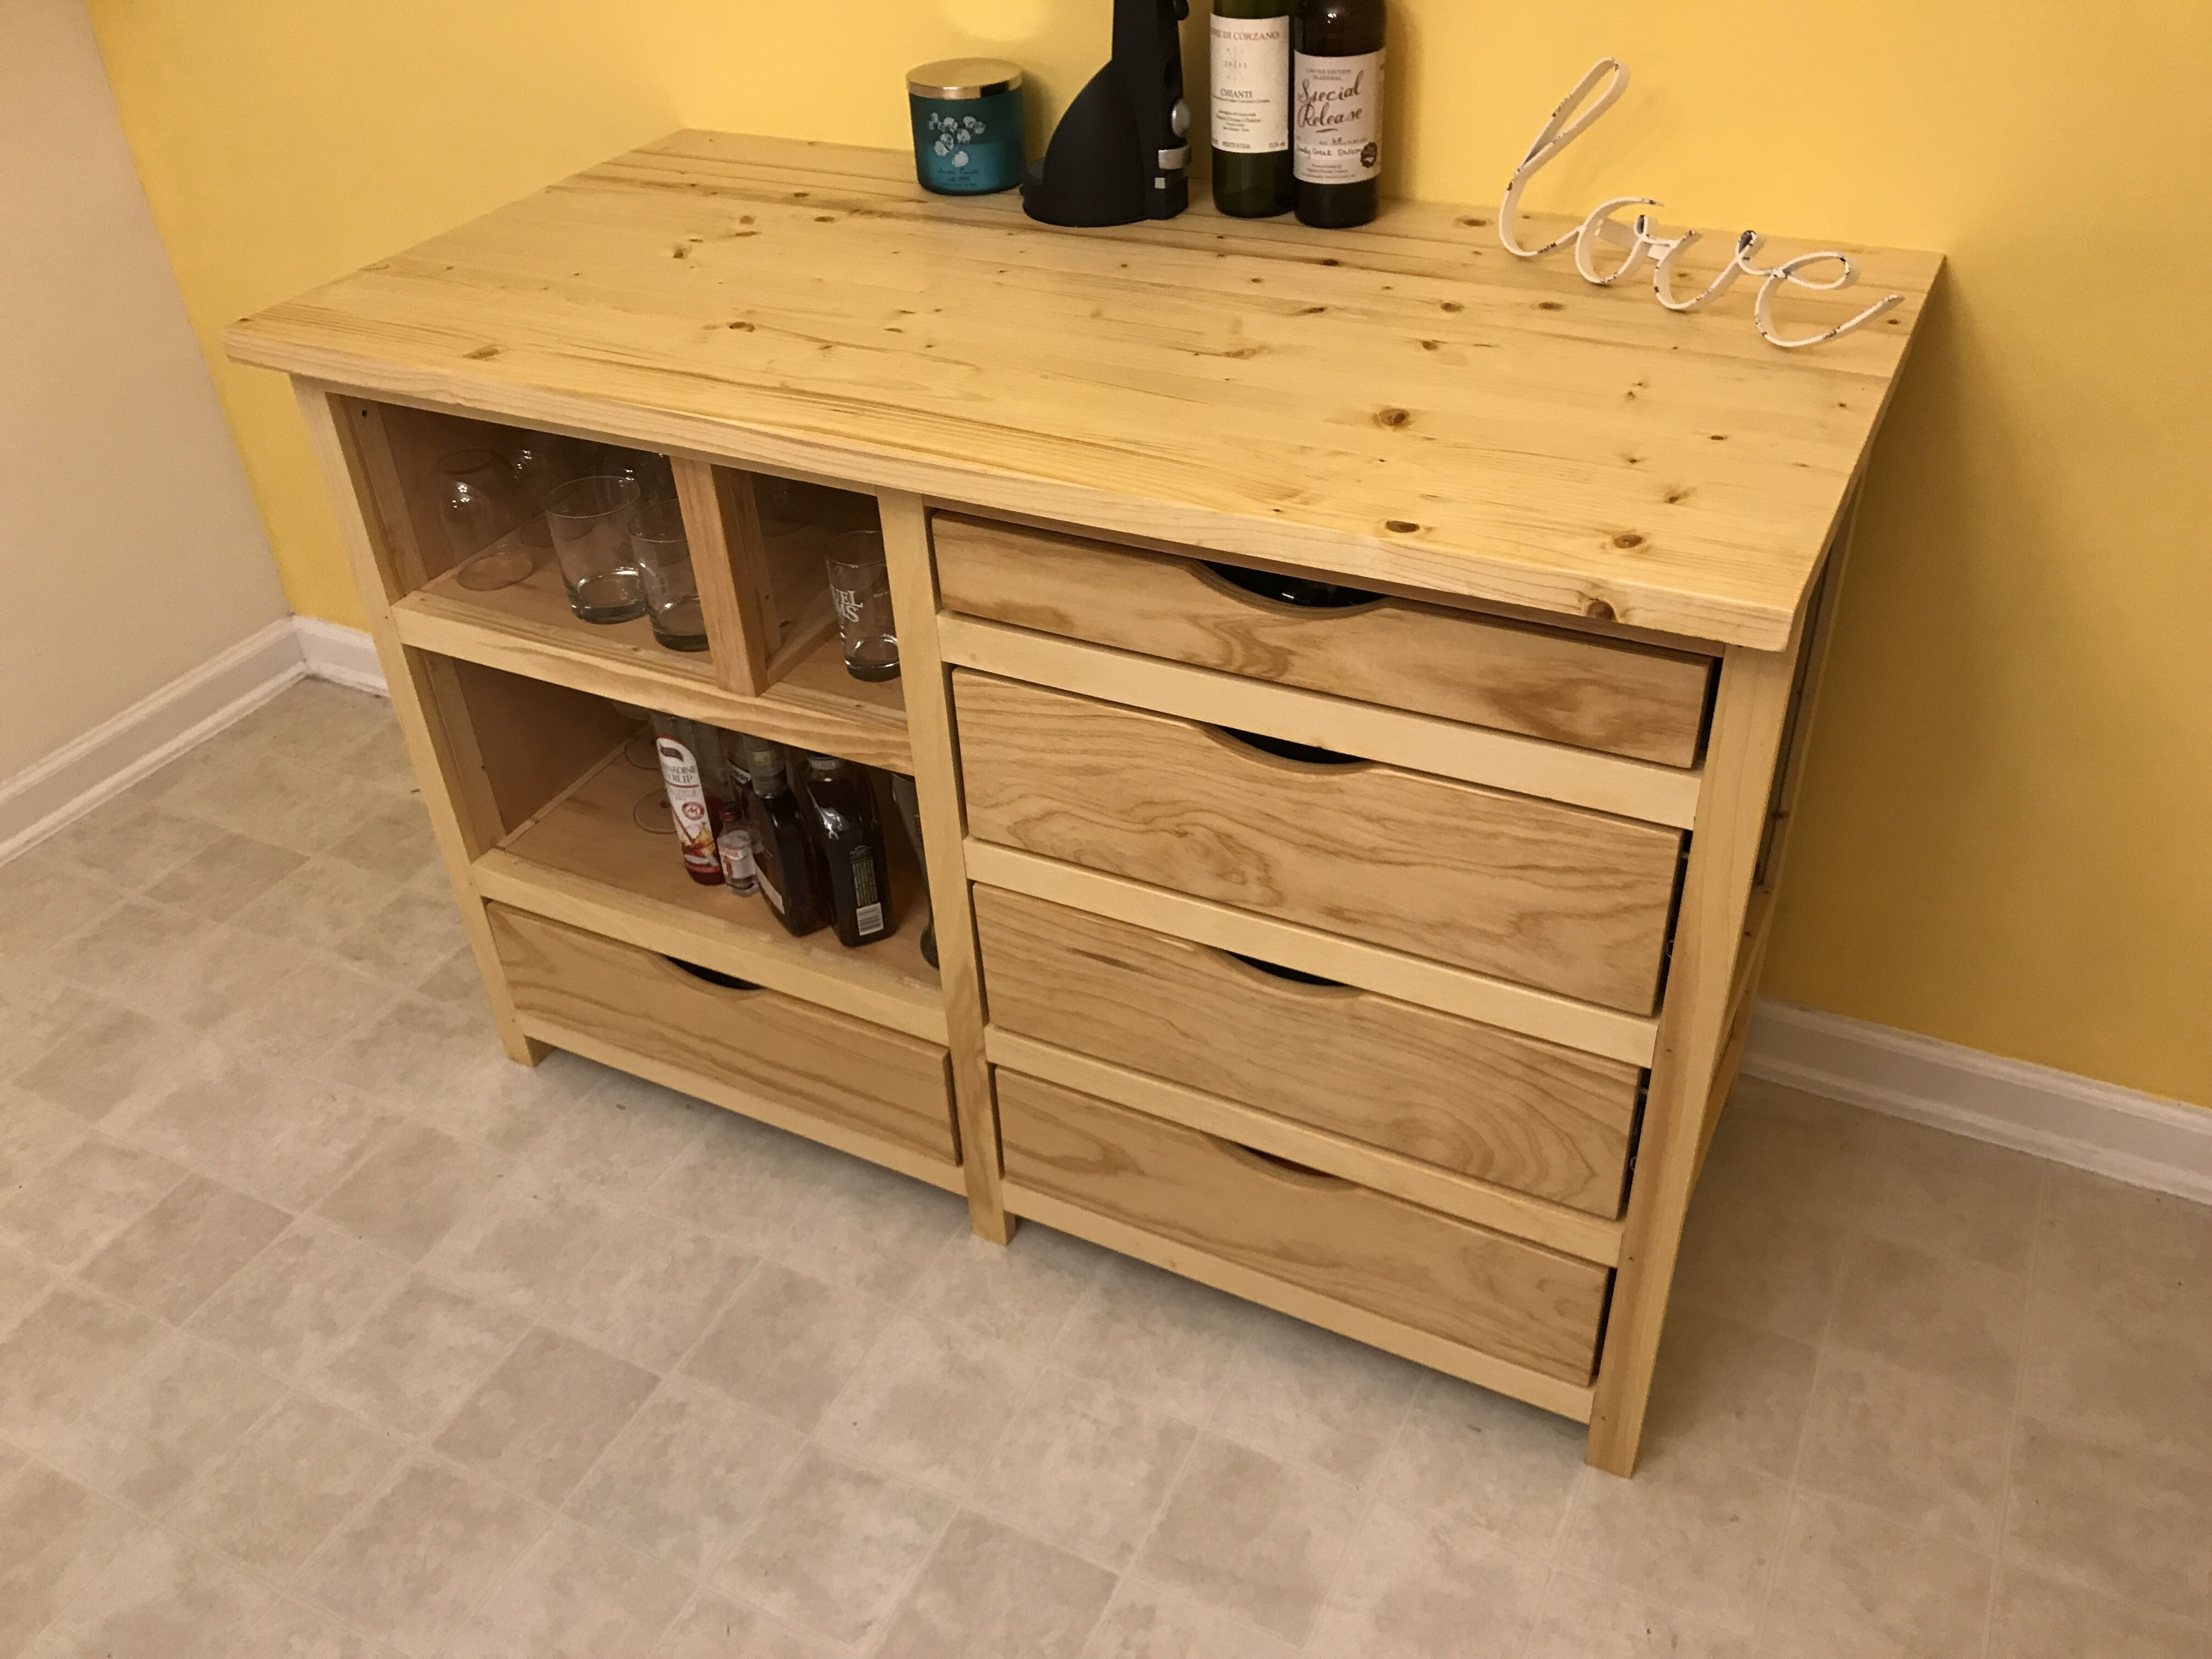 Custom Made Cabinets Hand Made Custom Built Cabinet With Wine Cooler Built In